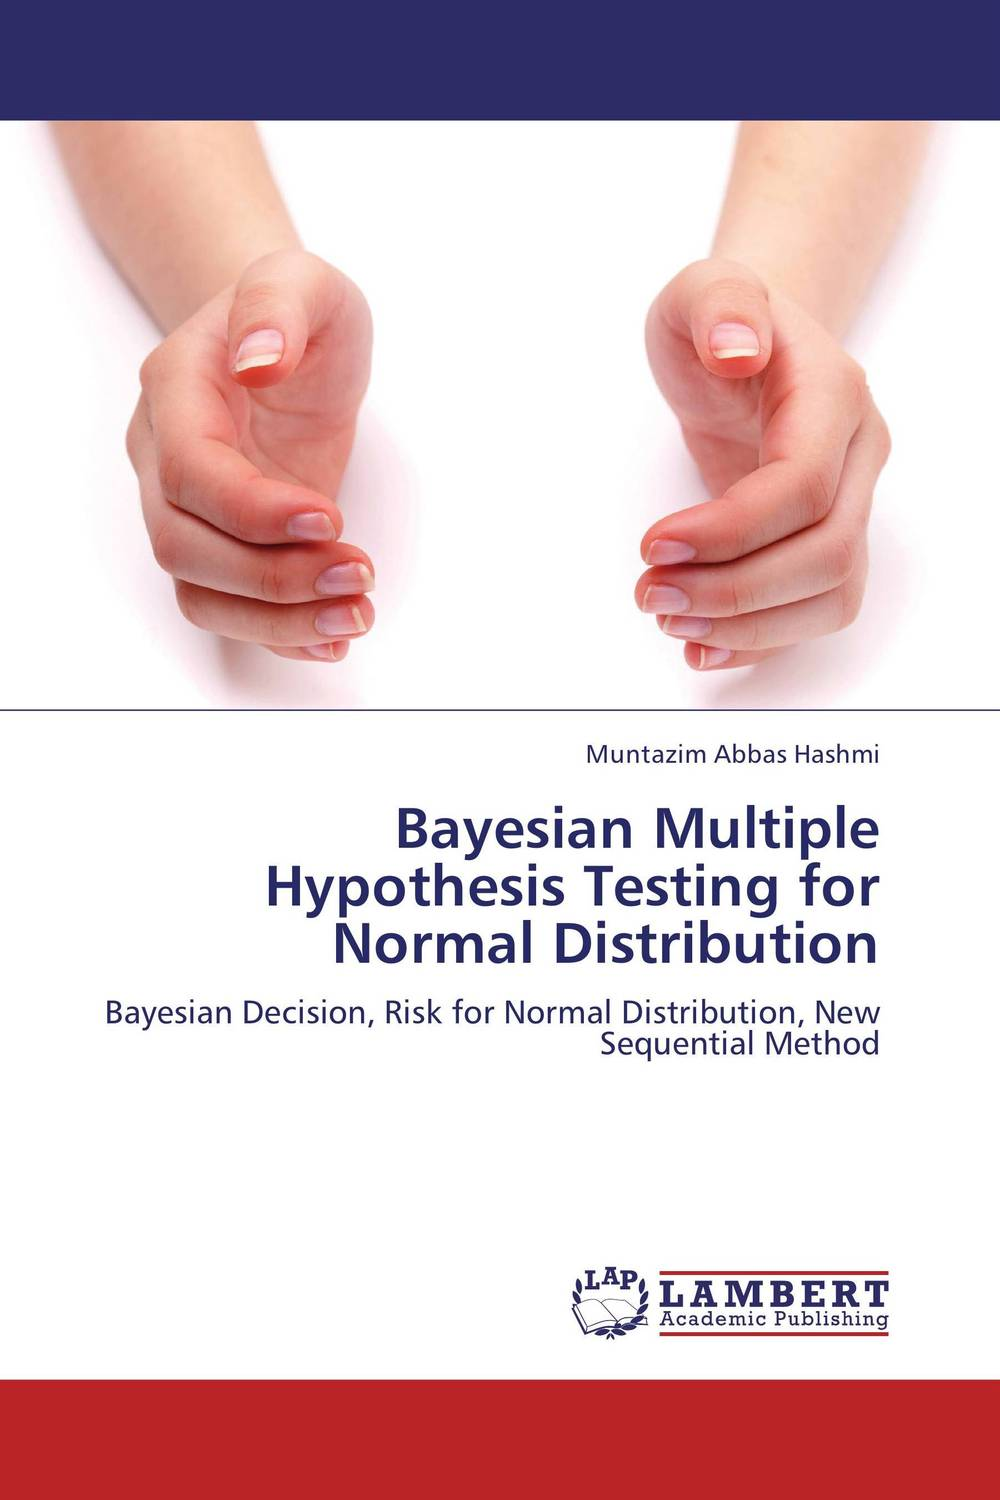 Bayesian Multiple Hypothesis Testing for Normal Distribution